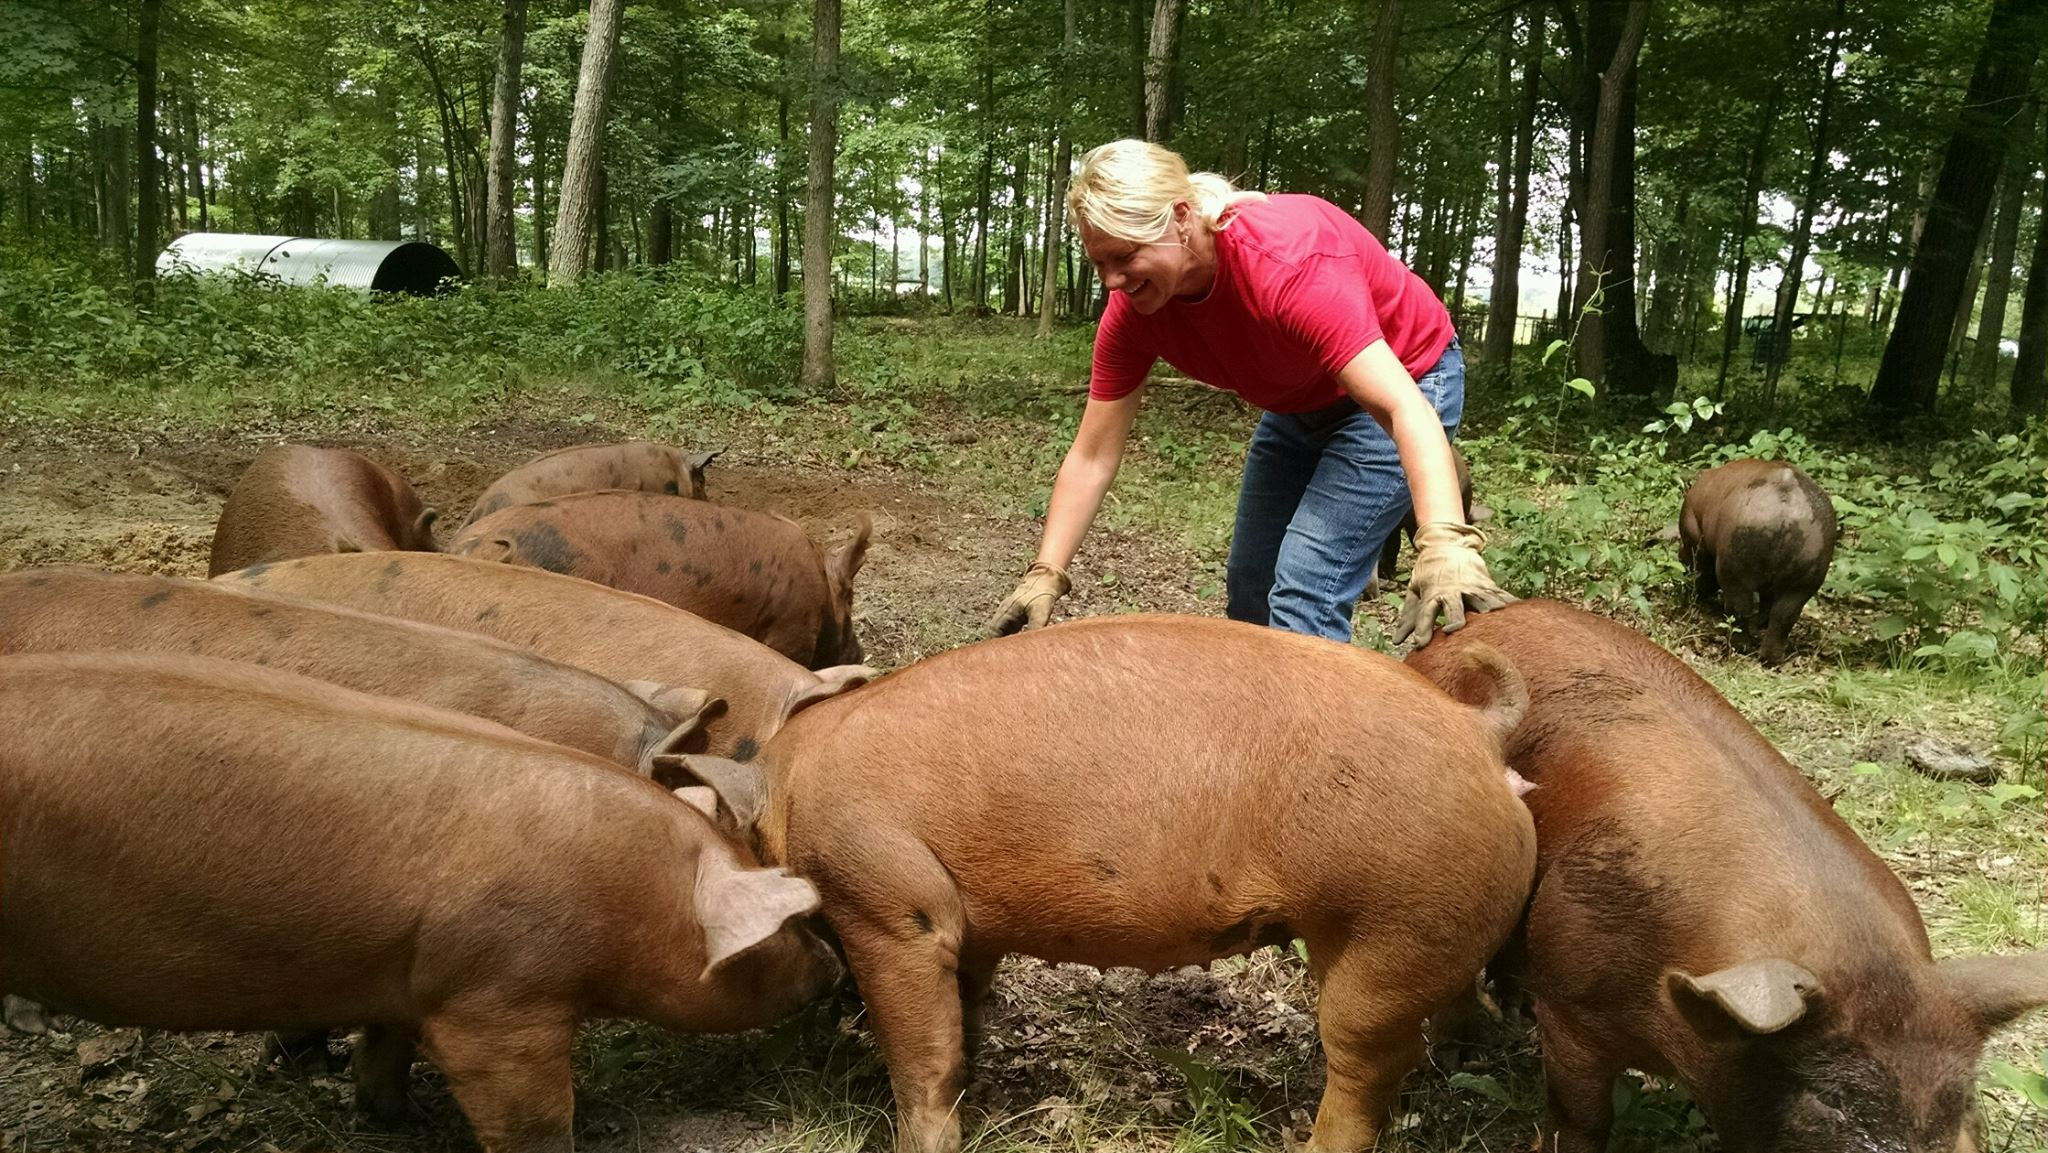 Bonnie with Pigs